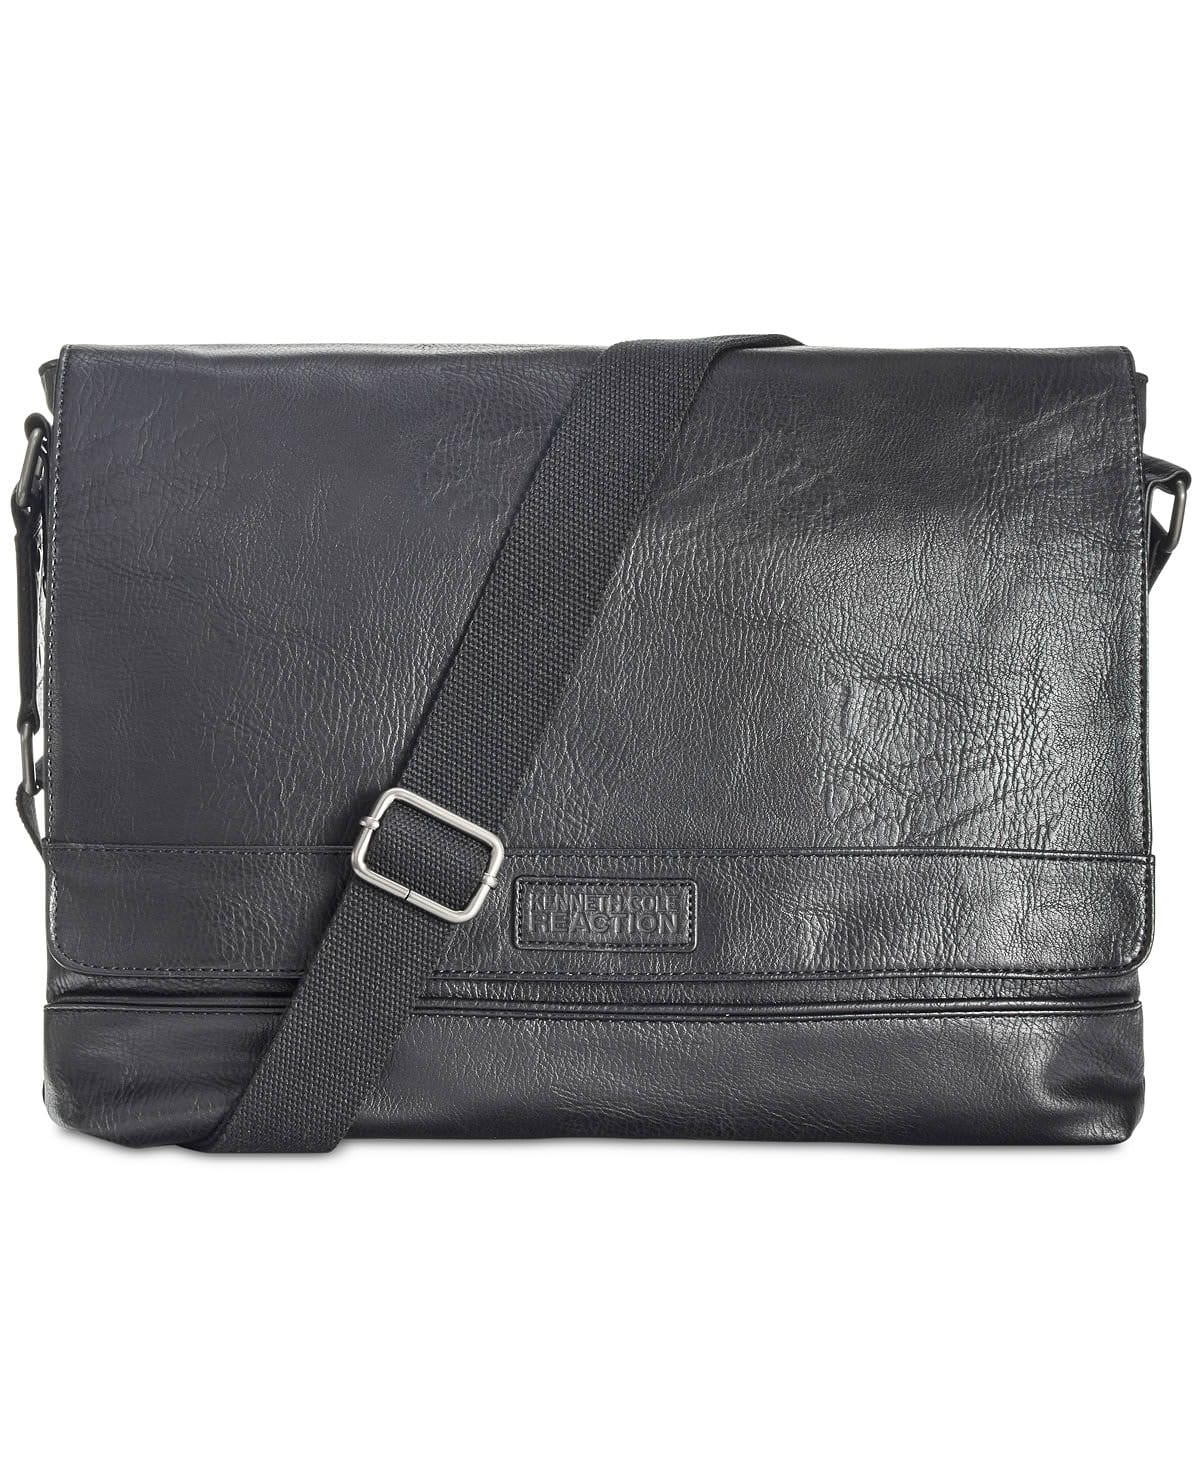 Kenneth Cole Reaction Men's Pebbled Messenger Bag $29.99 or less *or* Kenneth Cole Reaction Men's Business Case $29.99 or less at Macy's